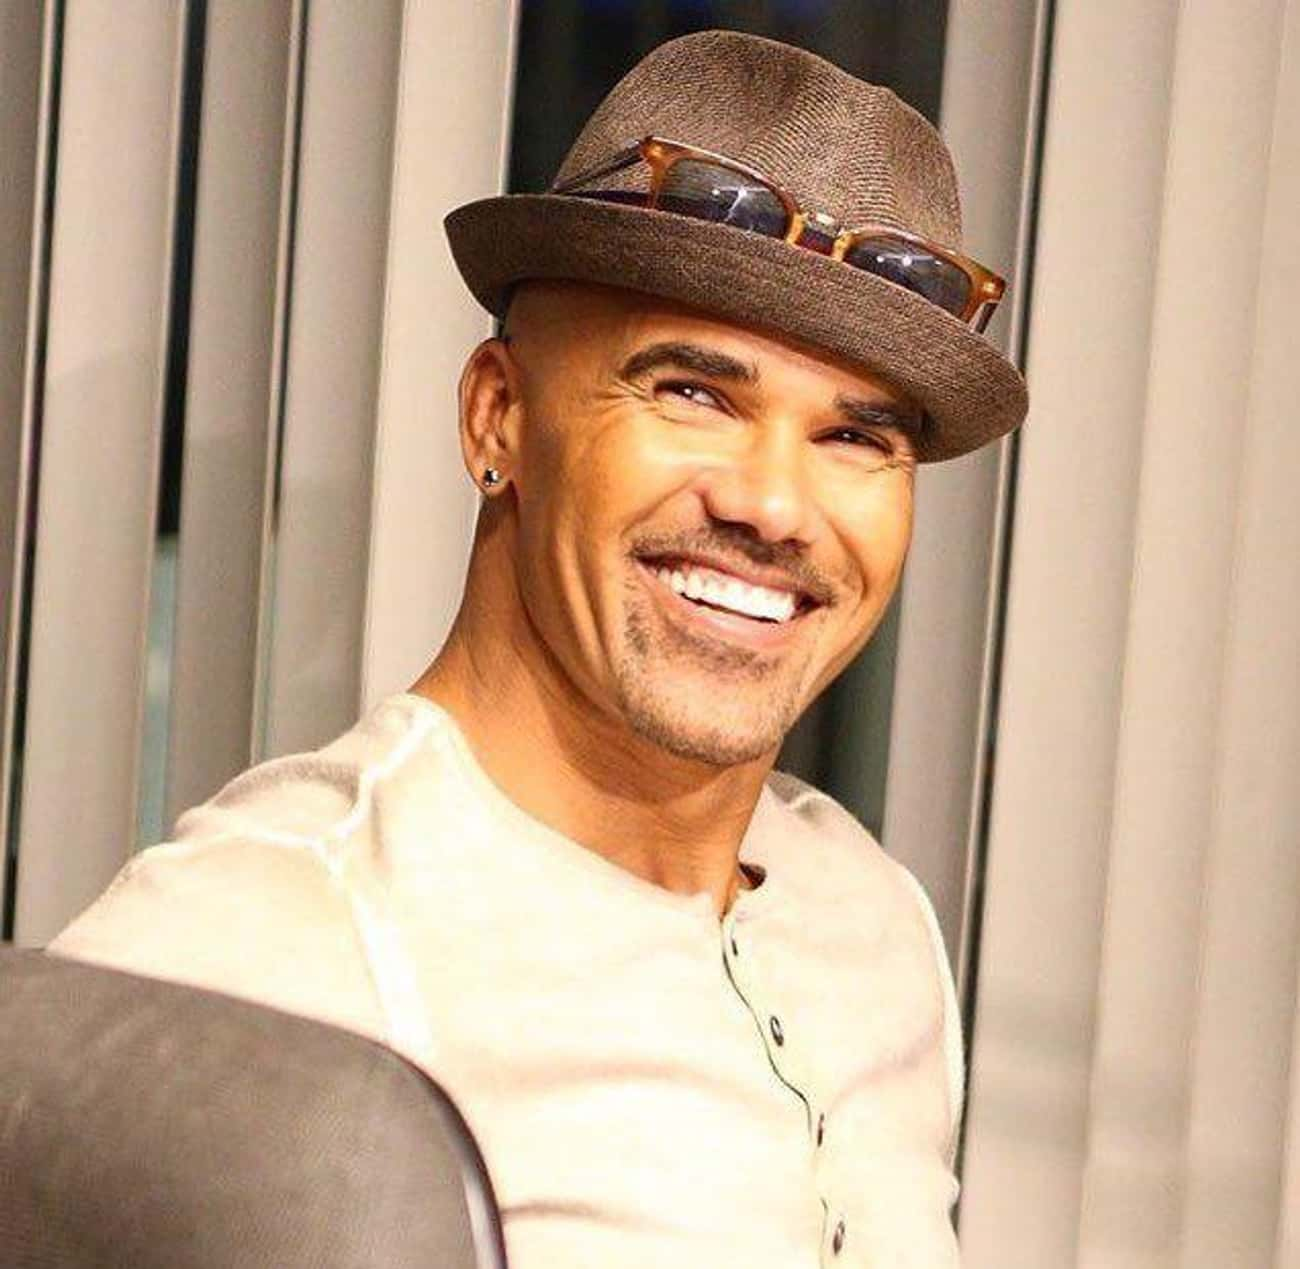 He's Lived All Over The Wo is listed (or ranked) 4 on the list 12 Stories And Facts That Prove Shemar Moore Is A True Leading Man